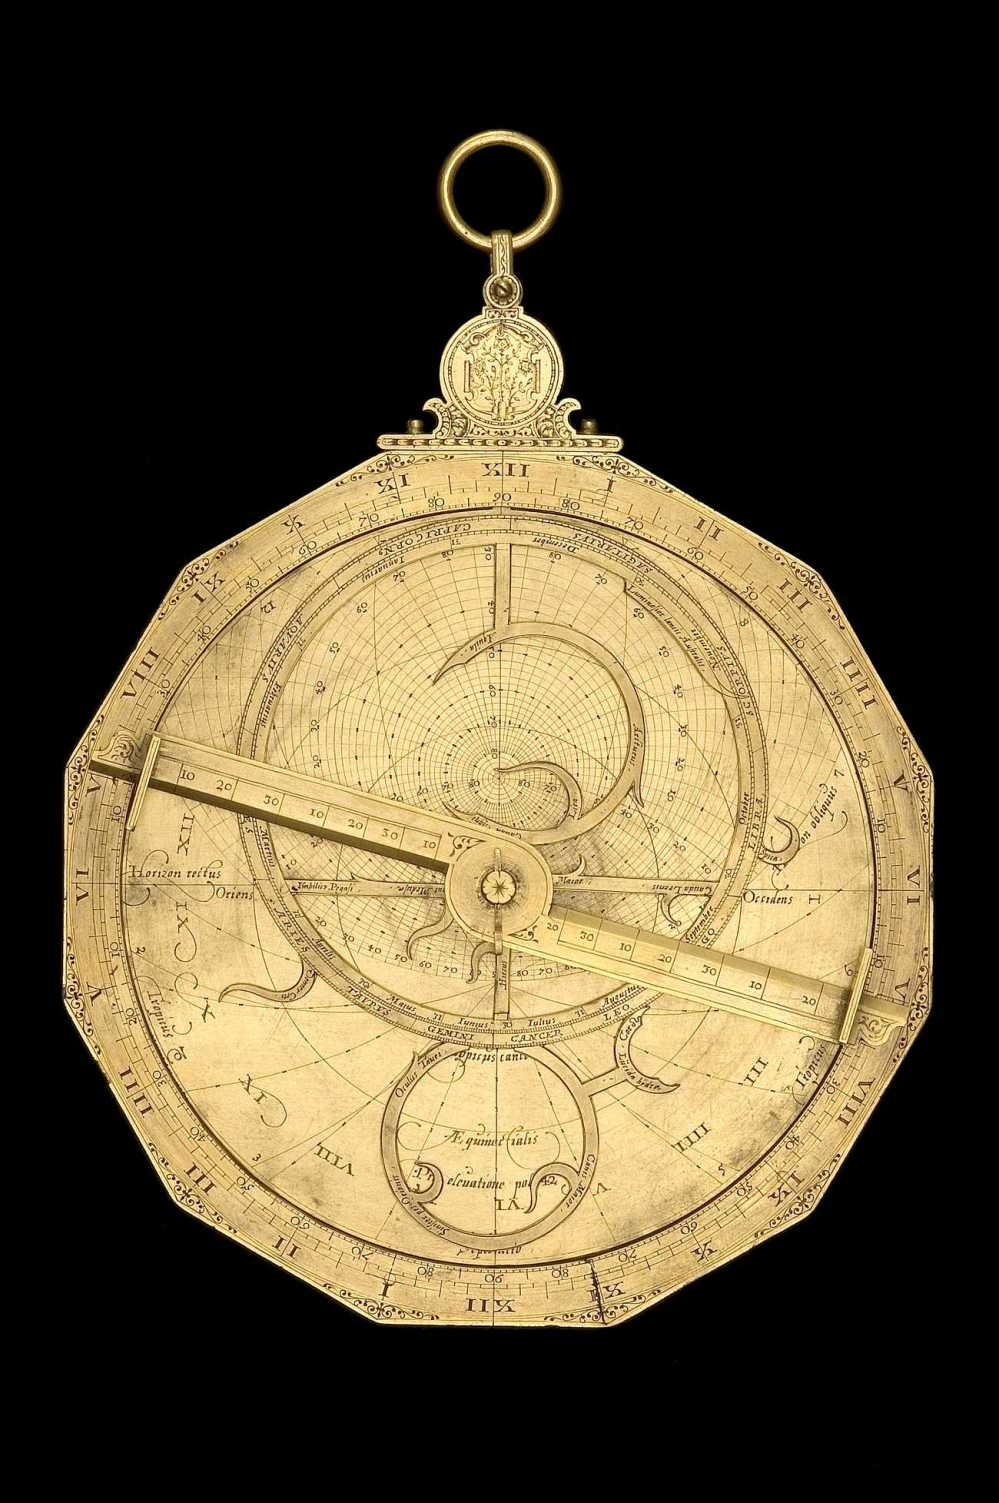 preview image for Dodecagonal Astrolabe, by Erasmus Habermel, German, c. 1585